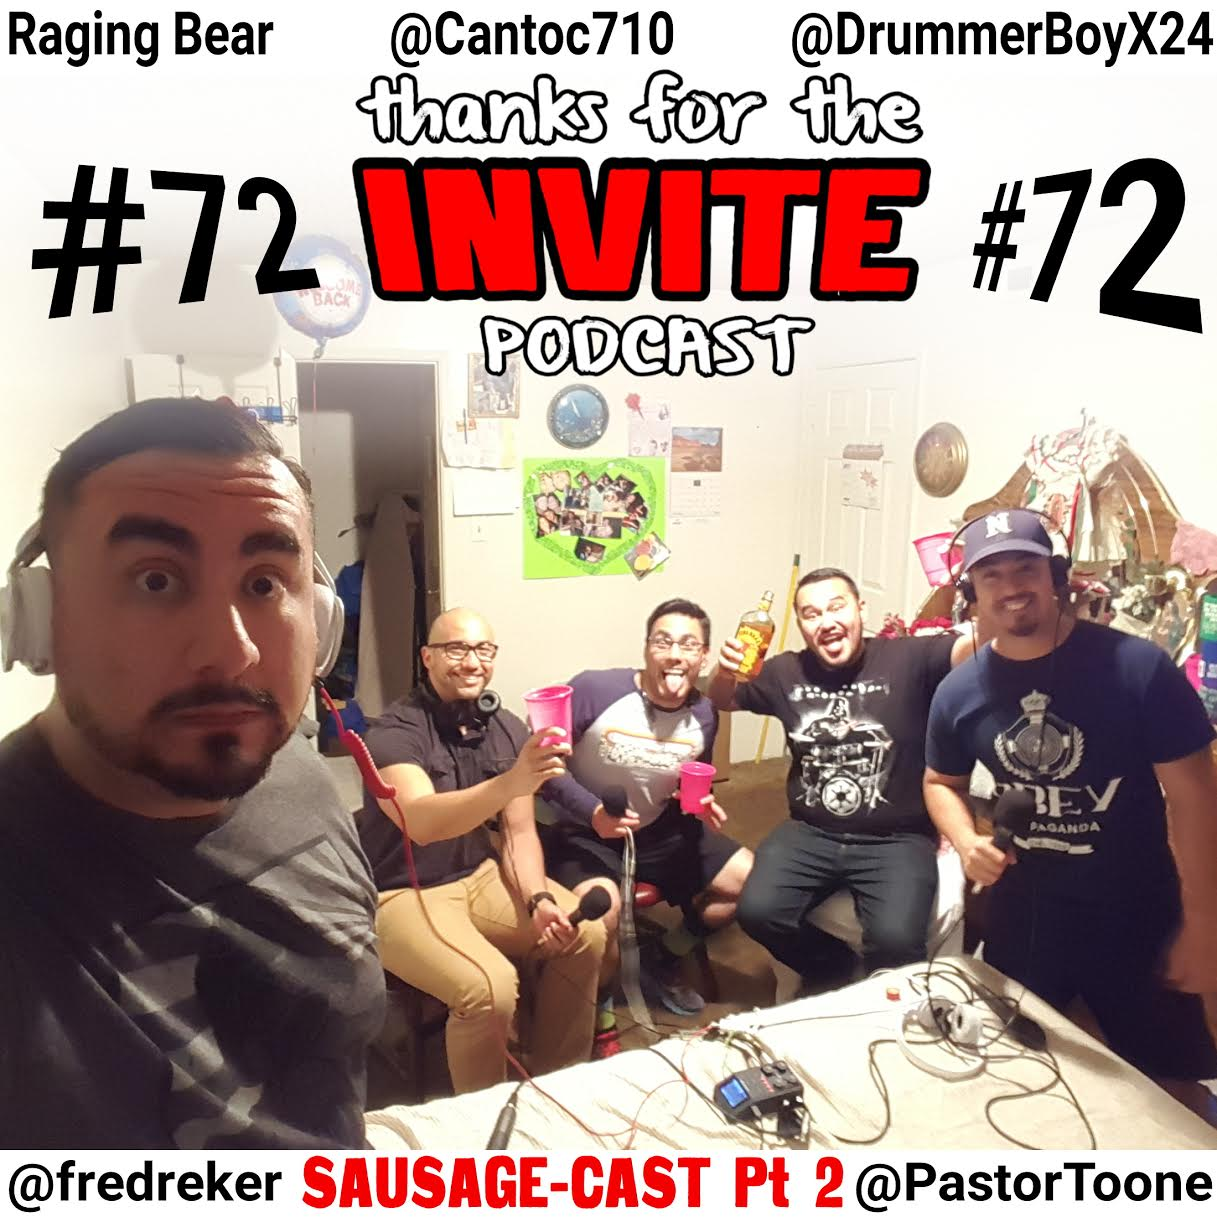 #72 TFTI with Freddy Correa - The Sausage Cast Pt 2 - Clemente Canton @cantoc710, Raging Bear, Sammy Solorio @DrummerBoyX24, & George Aristigui @PastorToone